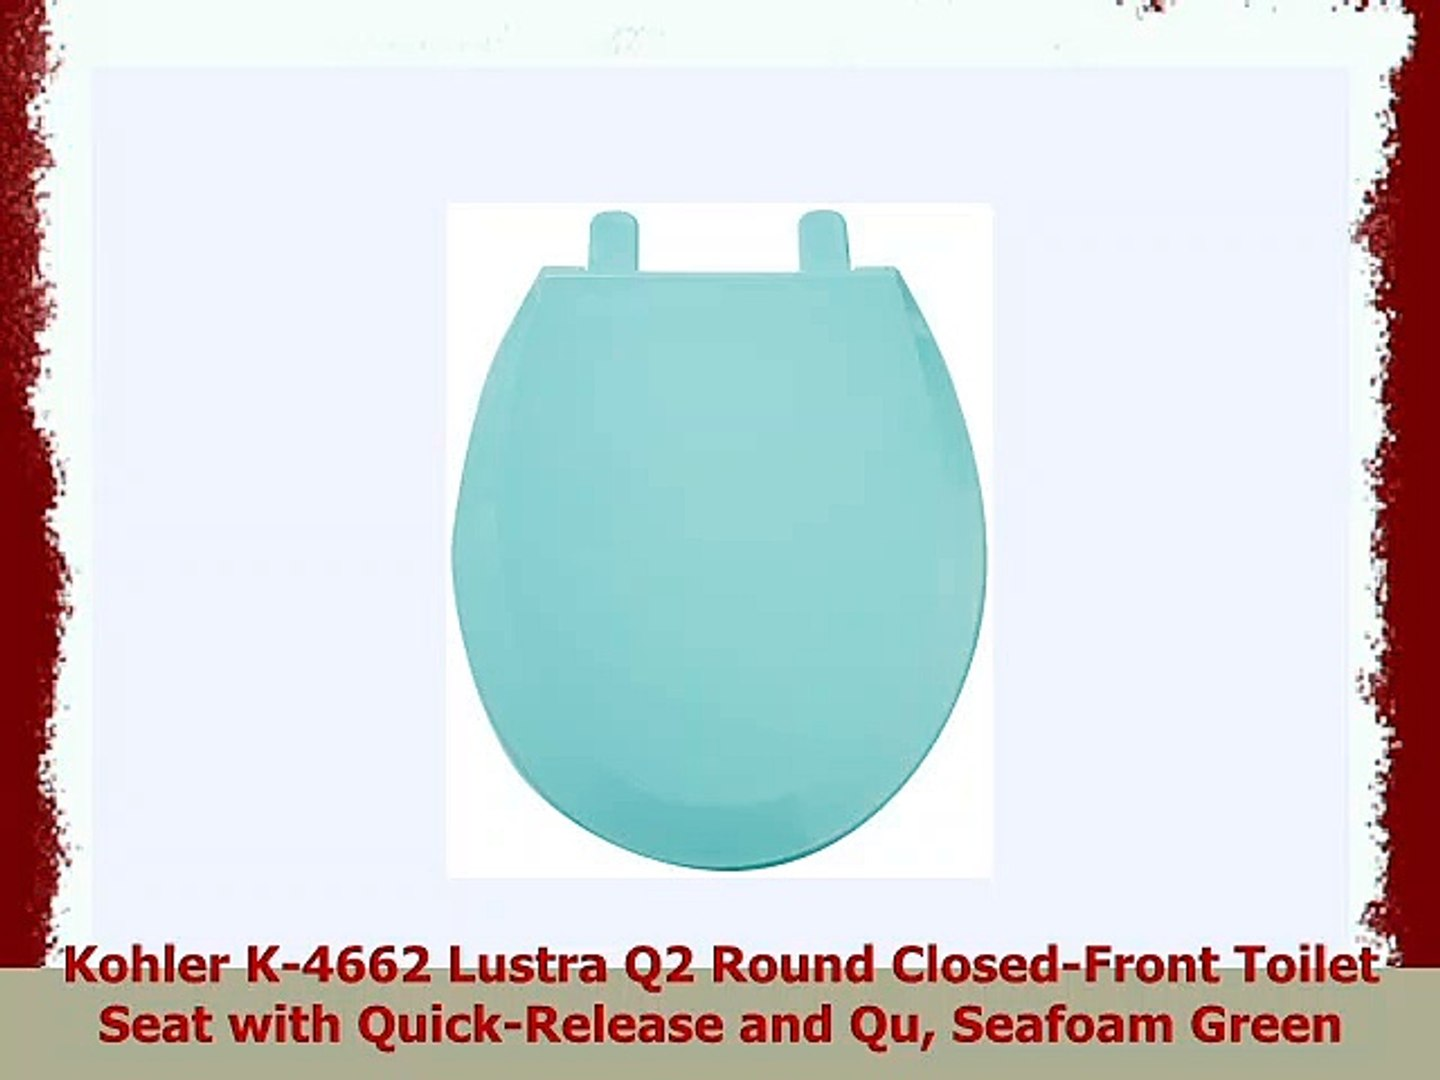 Admirable Kohler K4662 Lustra Q2 Round Closedfront Toilet Seat With Quickrelease And Qu Seafoam Ncnpc Chair Design For Home Ncnpcorg